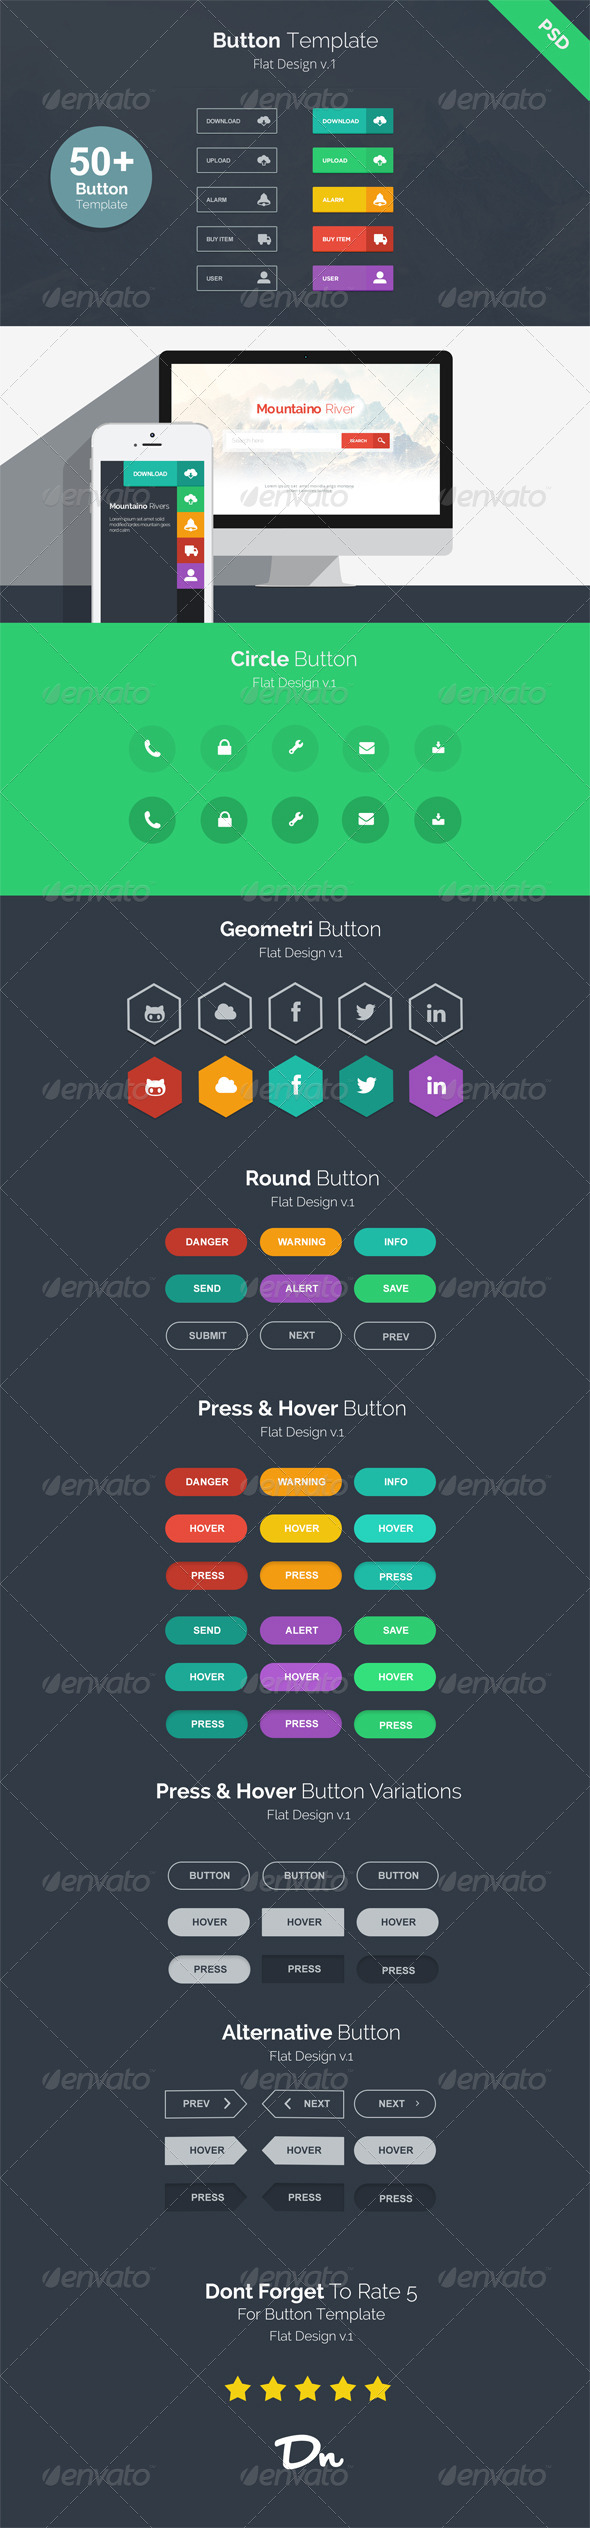 GraphicRiver Button Template v.1 7215382